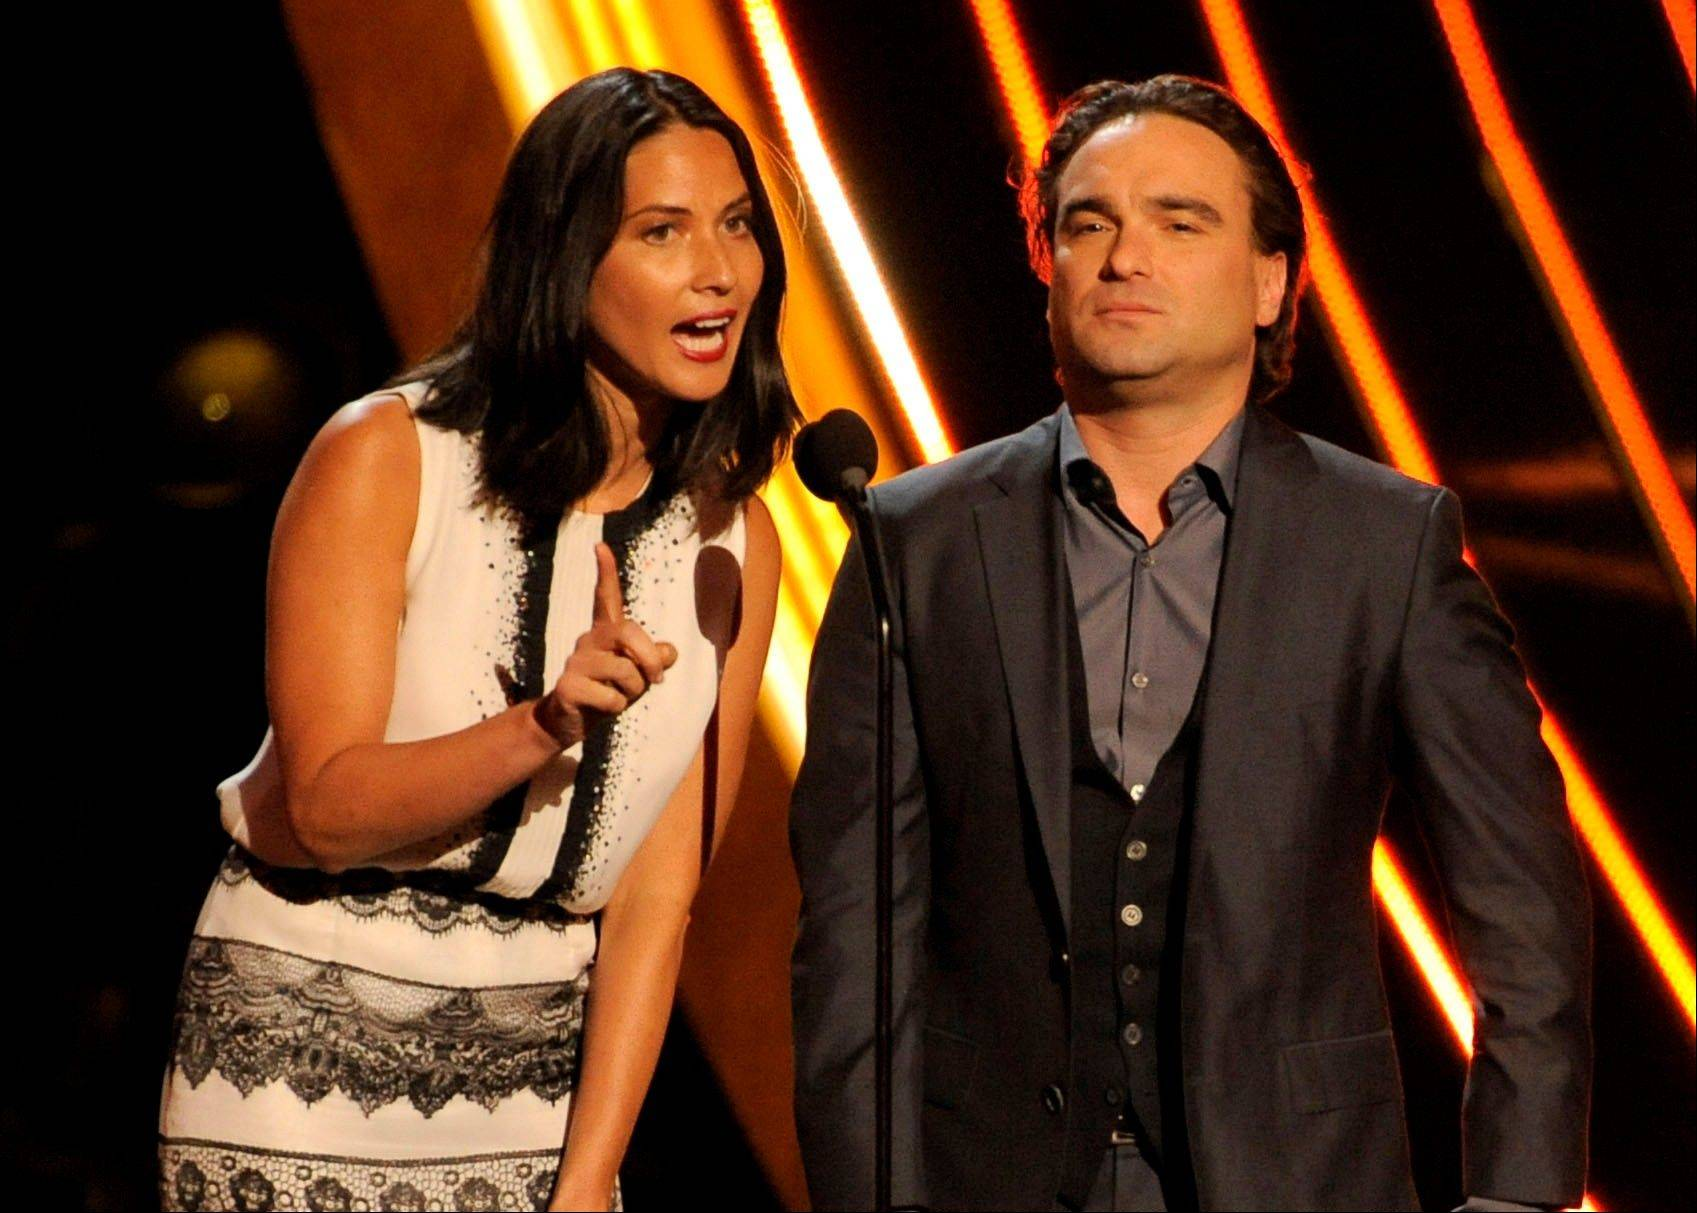 Olivia Munn, left, and Johnny Galecki present the award for the favorite country artist at the People's Choice Awards at the Nokia Theatre on Wednesday Jan. 9, 2013, in Los Angeles.